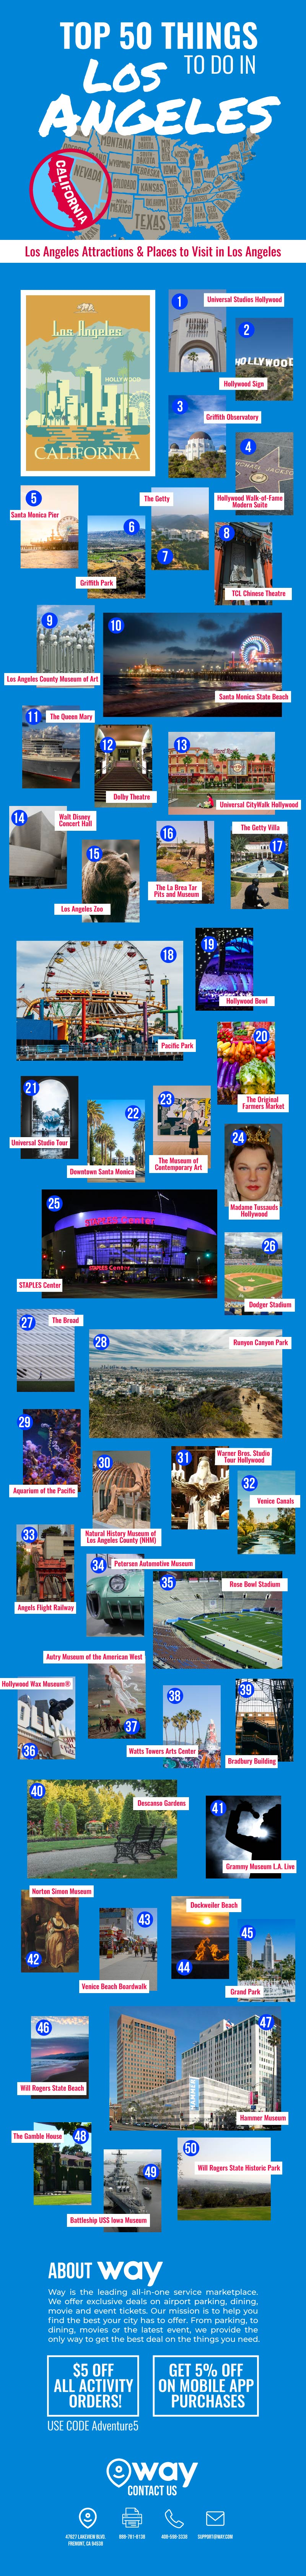 Top-50-Things-to-Do-in-Los-Angeles-infographic-plaza